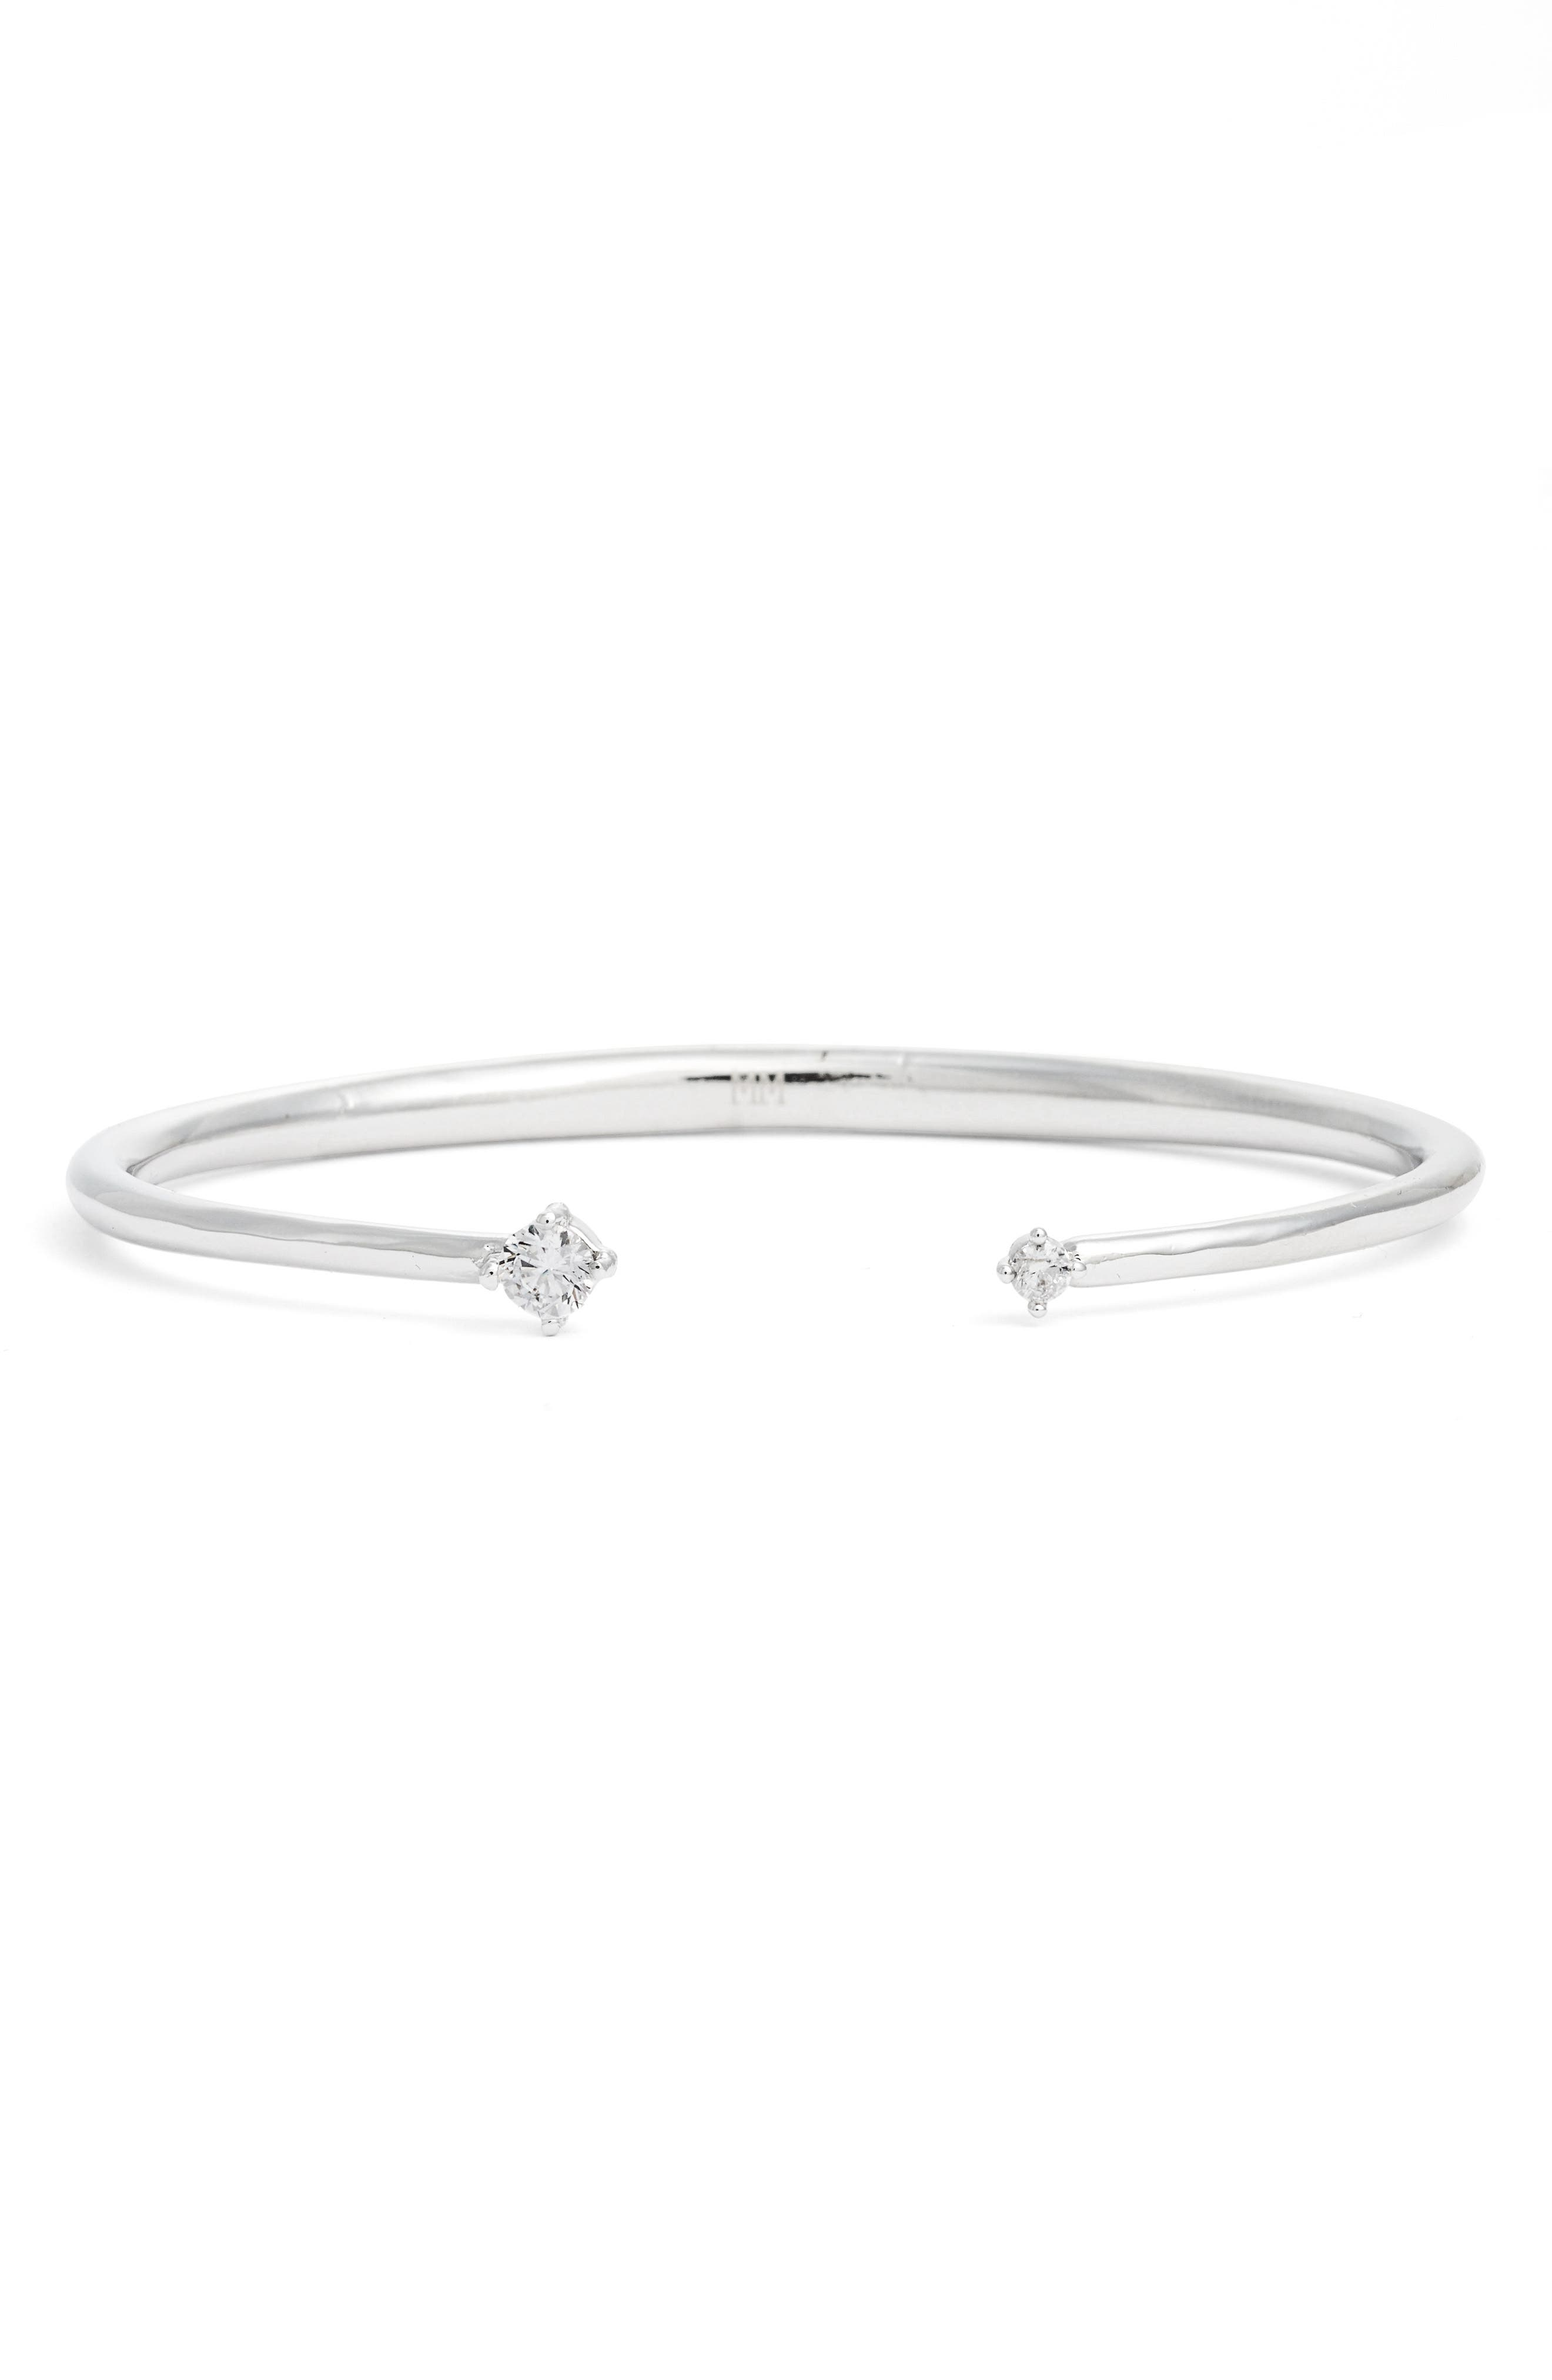 Belaisa Station Cuff,                         Main,                         color, Silver